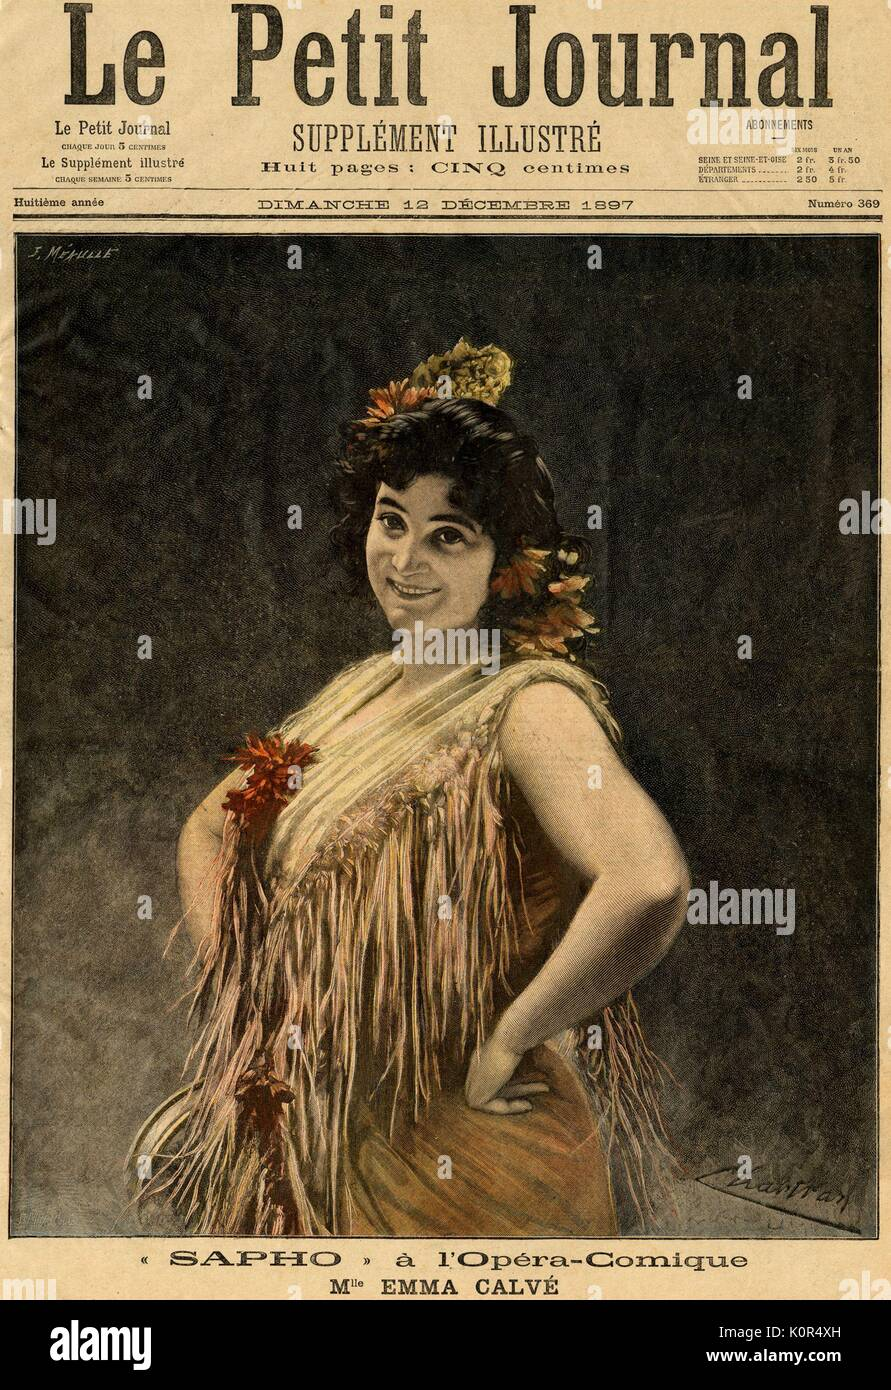 Emma Calvé in Massenet ' s Sapho. Her most famous role was as Carmen.  On the front page of Le Petit Journal, dated 12th December 1897. French soprano 1858-1942. - Stock Image